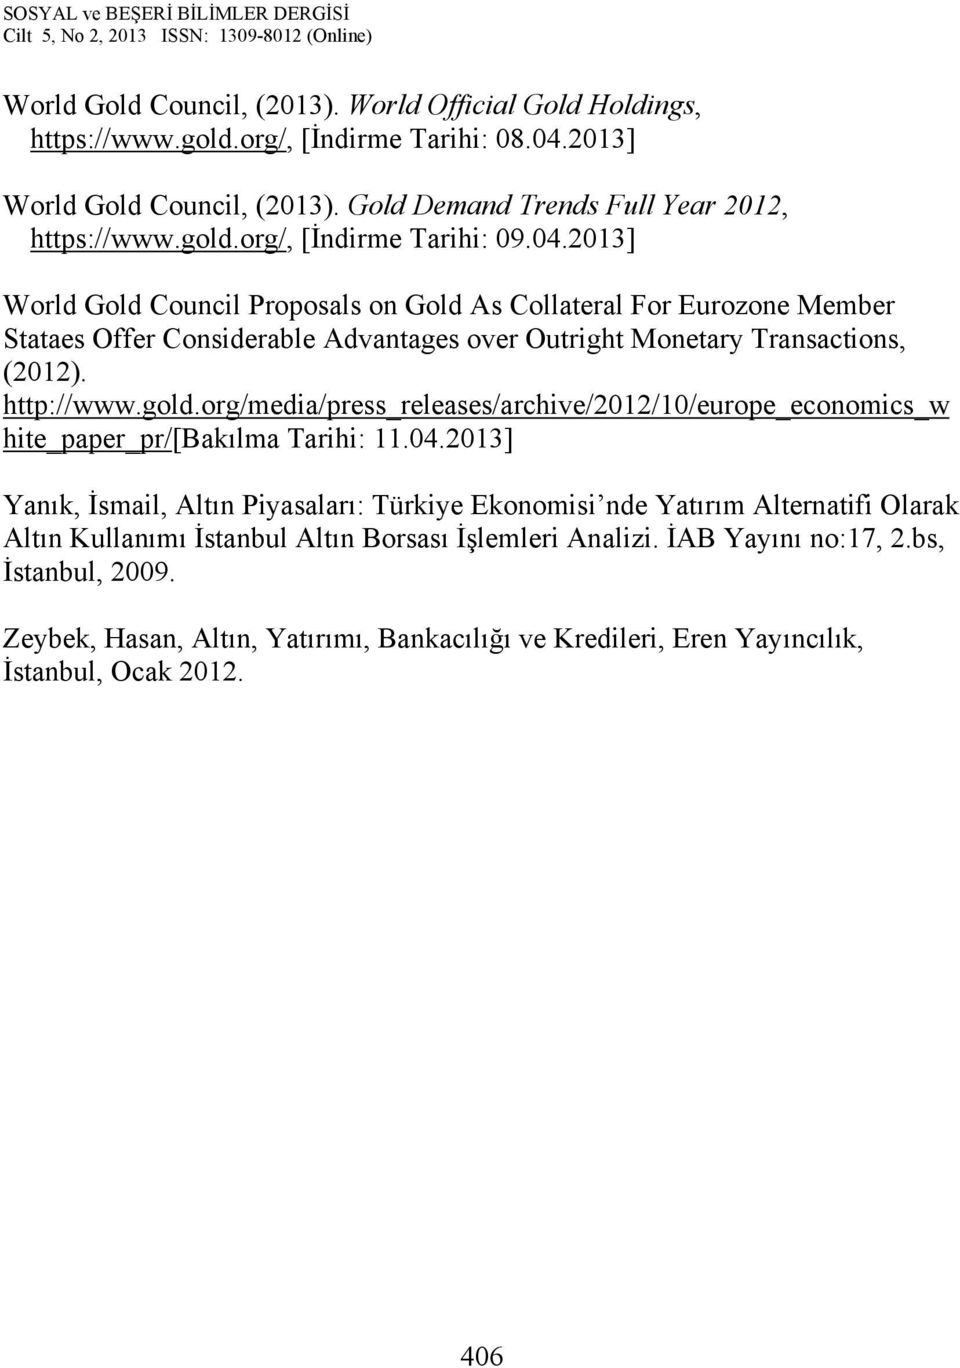 org/media/press_releases/archive/2012/10/europe_economics_w hite_paper_pr/[bakılma Tarihi: 11.04.